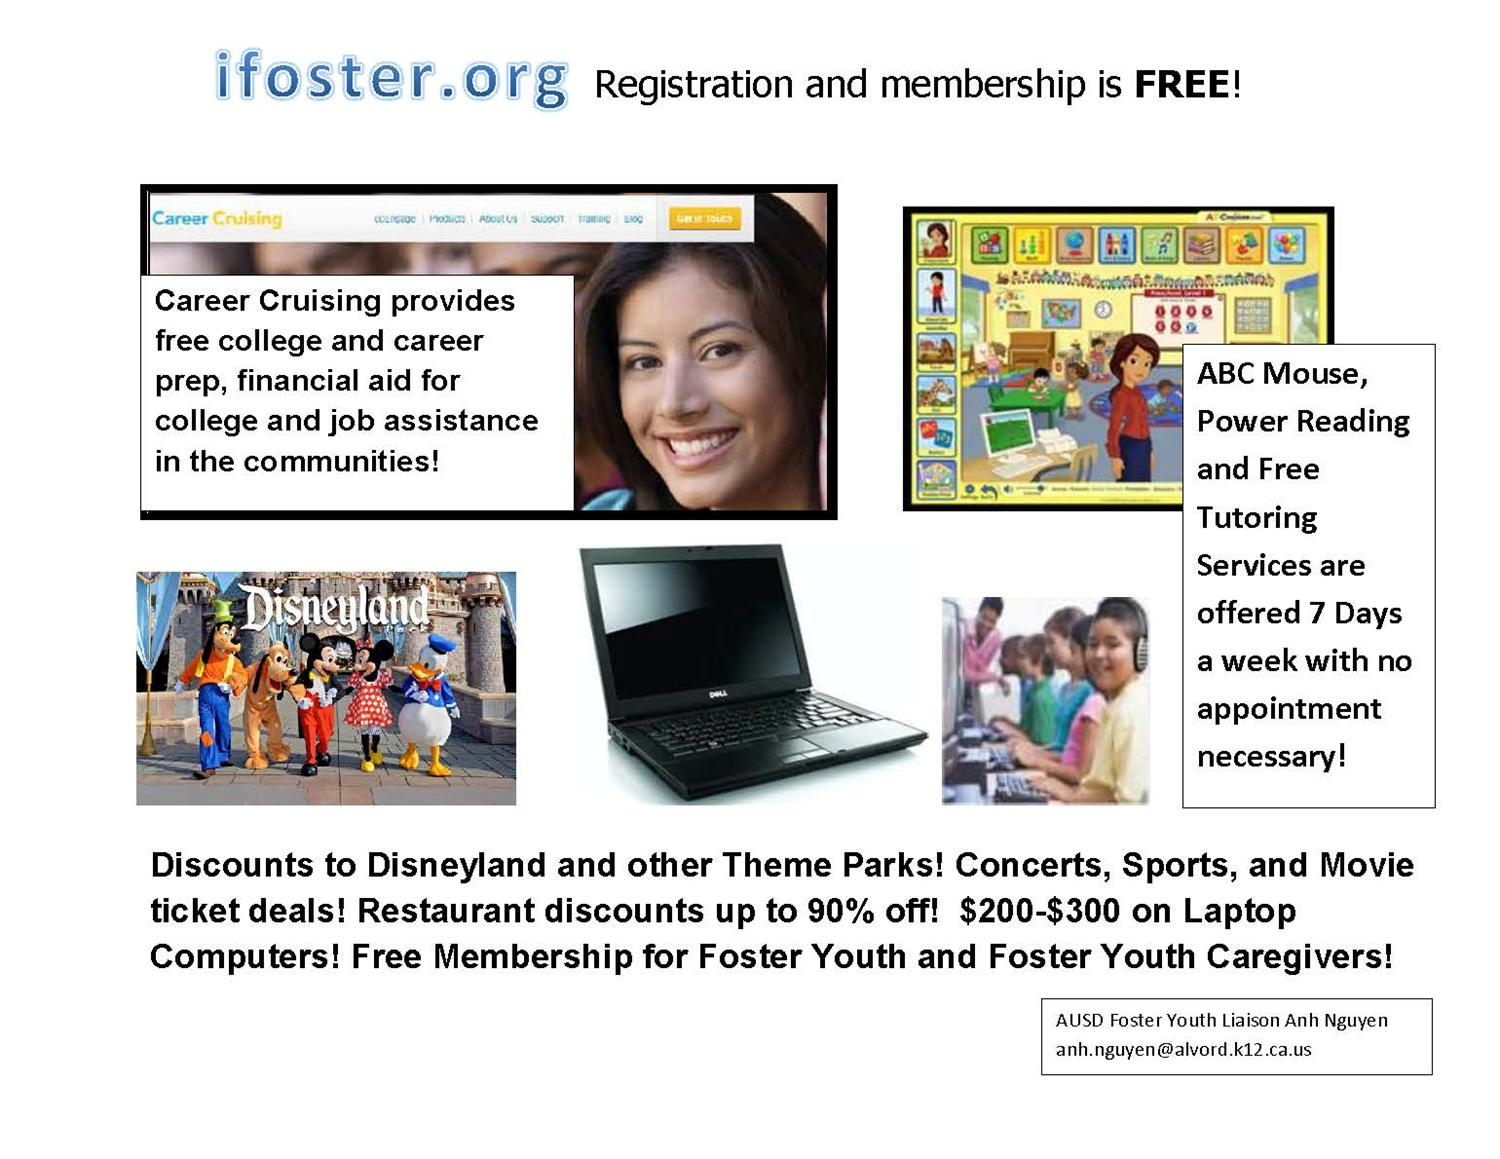 iFoster.org flyer